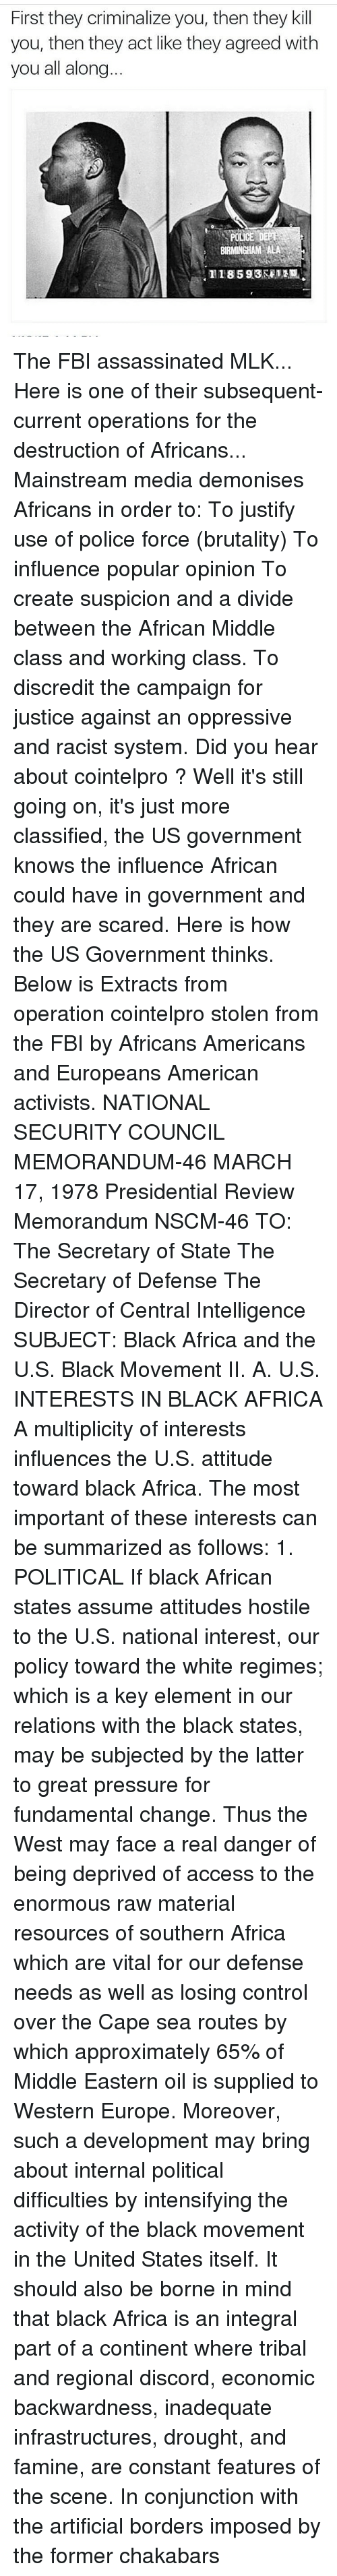 Africa, Assassination, and Fbi: First they criminalize you, then they kill  you, then they act like they agreed with  you all along  BIRMINGHAM ALA The FBI assassinated MLK... Here is one of their subsequent-current operations for the destruction of Africans... Mainstream media demonises Africans in order to: To justify use of police force (brutality) To influence popular opinion To create suspicion and a divide between the African Middle class and working class. To discredit the campaign for justice against an oppressive and racist system. Did you hear about cointelpro ? Well it's still going on, it's just more classified, the US government knows the influence African could have in government and they are scared. Here is how the US Government thinks. Below is Extracts from operation cointelpro stolen from the FBI by Africans Americans and Europeans American activists. NATIONAL SECURITY COUNCIL MEMORANDUM-46 MARCH 17, 1978 Presidential Review Memorandum NSCM-46 TO: The Secretary of State The Secretary of Defense The Director of Central Intelligence SUBJECT: Black Africa and the U.S. Black Movement II. A. U.S. INTERESTS IN BLACK AFRICA A multiplicity of interests influences the U.S. attitude toward black Africa. The most important of these interests can be summarized as follows: 1. POLITICAL If black African states assume attitudes hostile to the U.S. national interest, our policy toward the white regimes; which is a key element in our relations with the black states, may be subjected by the latter to great pressure for fundamental change. Thus the West may face a real danger of being deprived of access to the enormous raw material resources of southern Africa which are vital for our defense needs as well as losing control over the Cape sea routes by which approximately 65% of Middle Eastern oil is supplied to Western Europe. Moreover, such a development may bring about internal political difficulties by intensifying the activity of the black movement in the United States itself. It should also be borne in mind that black Africa is an integral part of a continent where tribal and regional discord, economic backwardness, inadequate infrastructures, drought, and famine, are constant features of the scene. In conjunction with the artificial borders imposed by the former chakabars